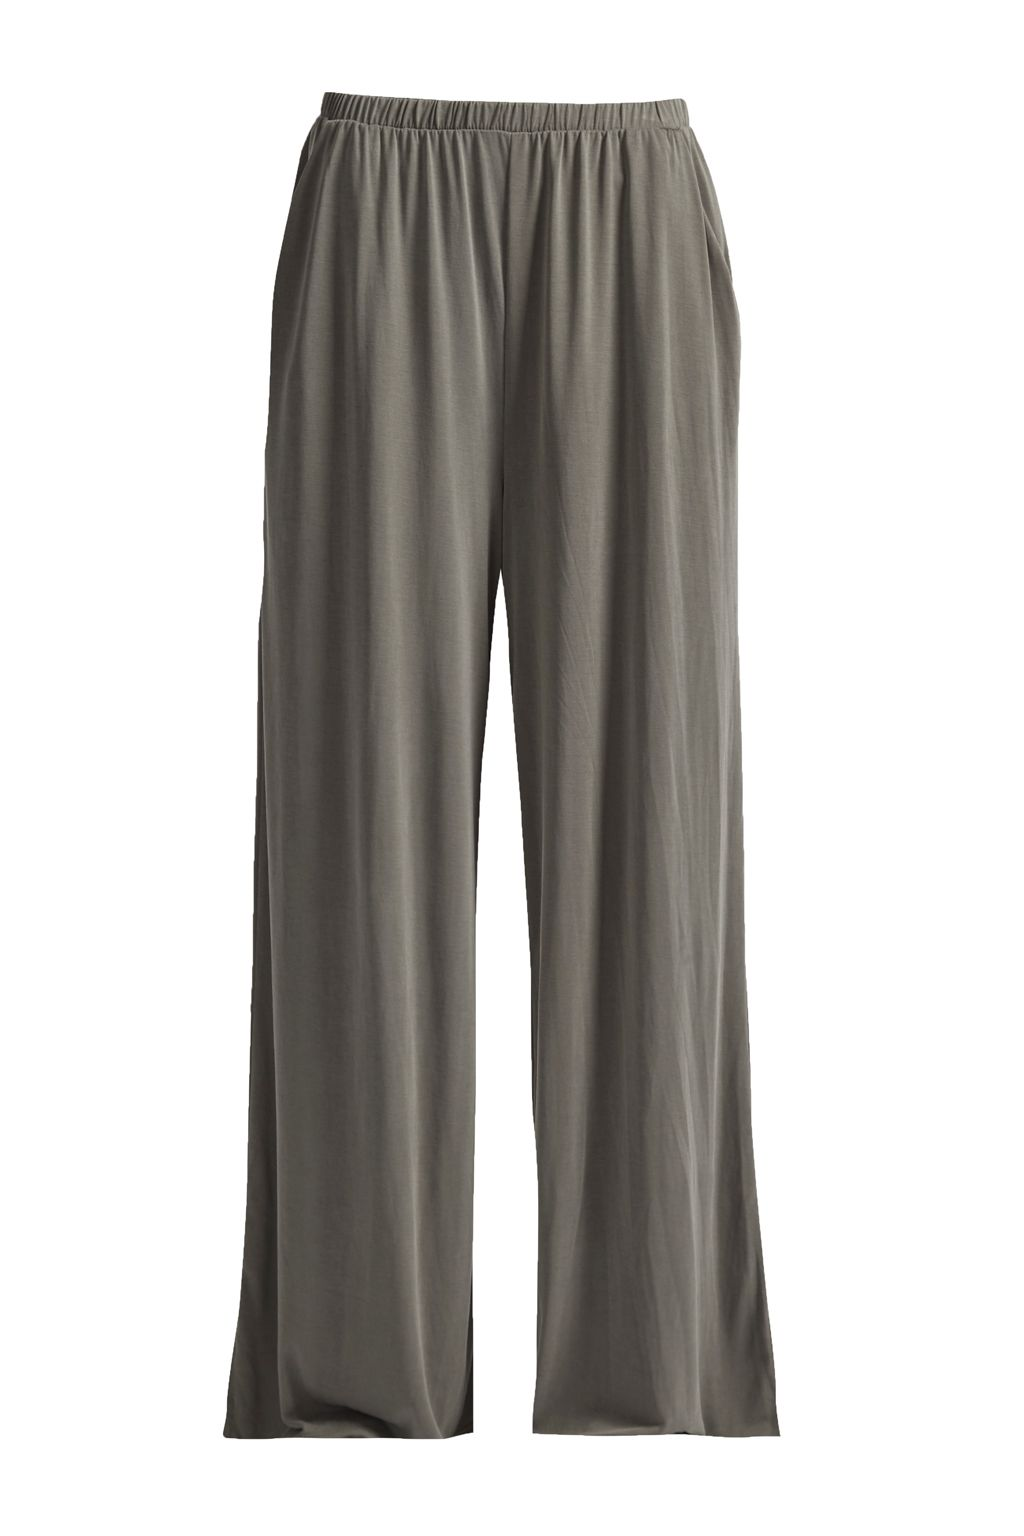 Great Plains So Peachy Wide Leg Jersey Trousers, Green